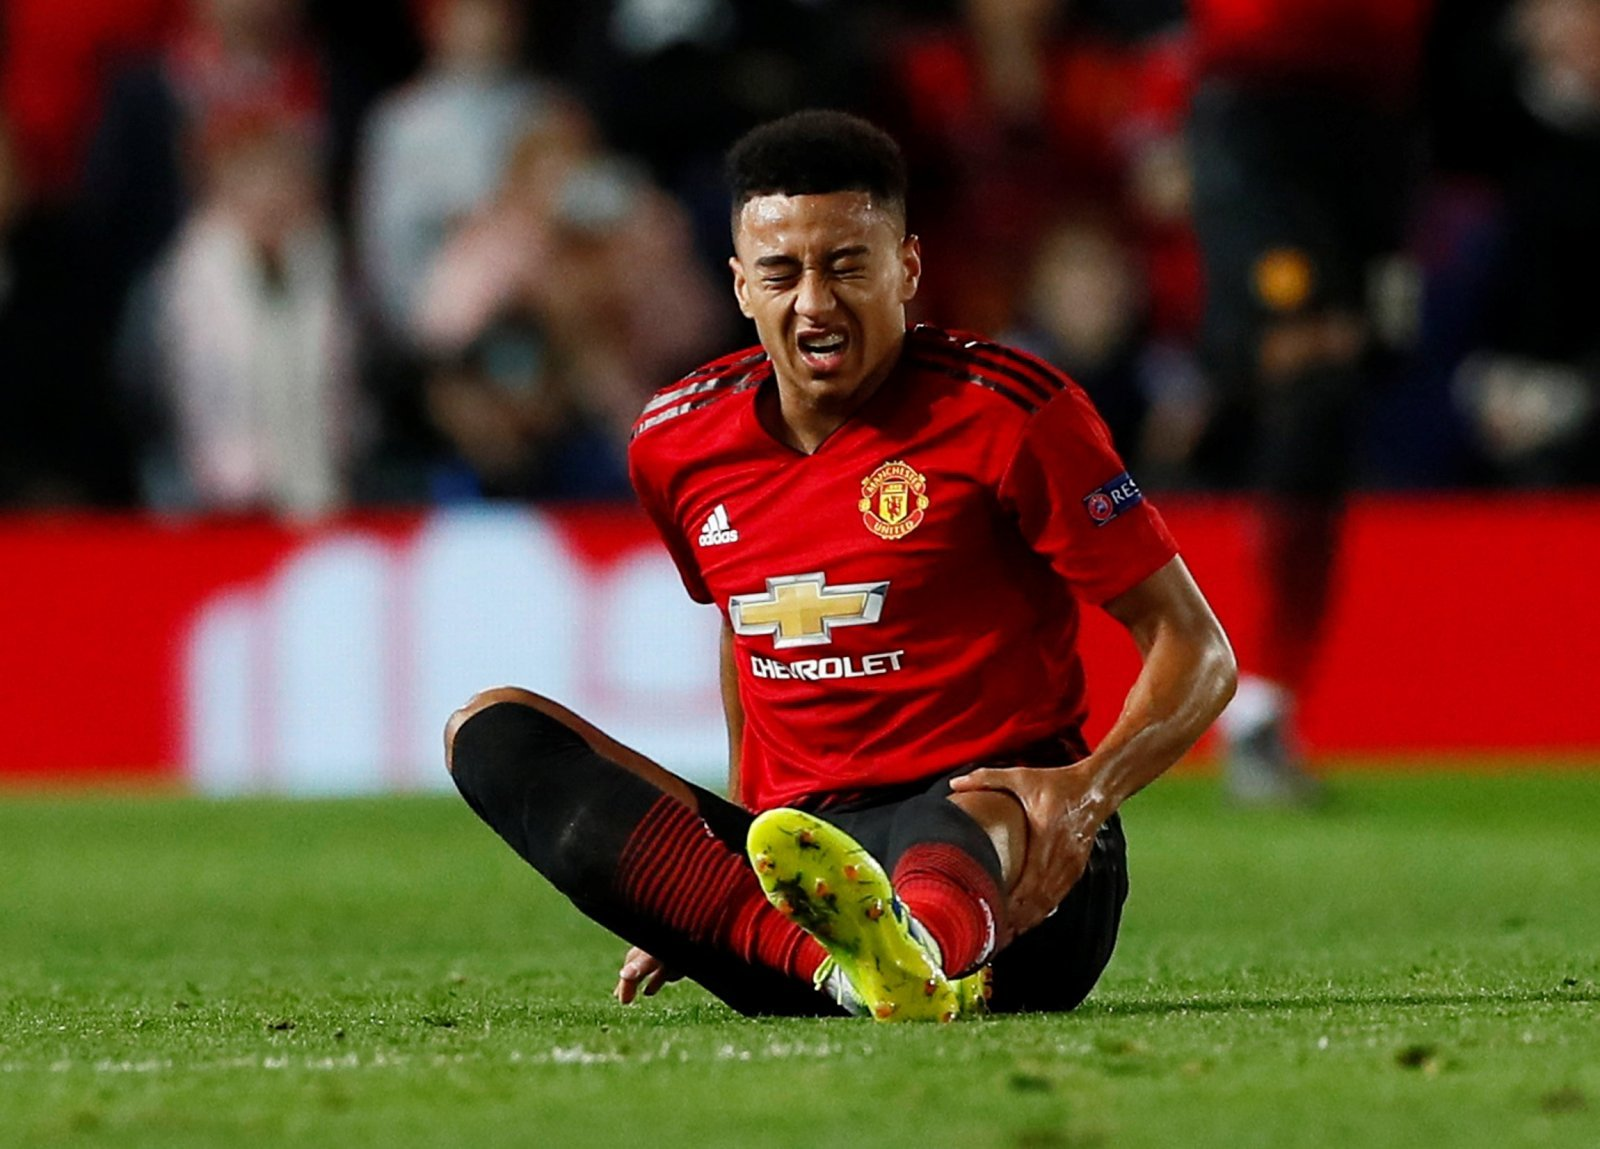 Manchester United: Jesse Lingard's absence a killer for Ole Gunnar Solskjaer